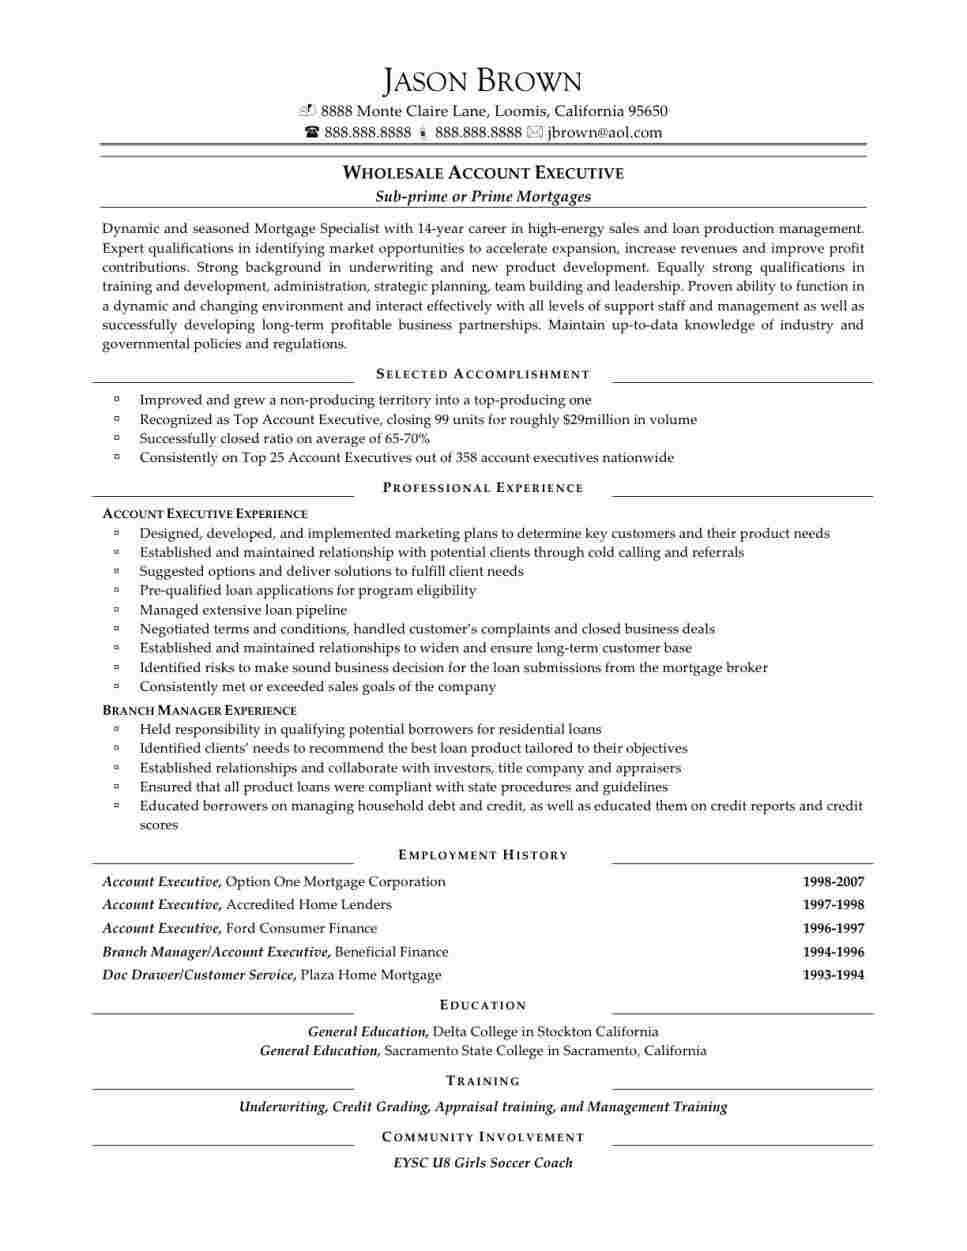 Sample Resume For Sales Executive In India